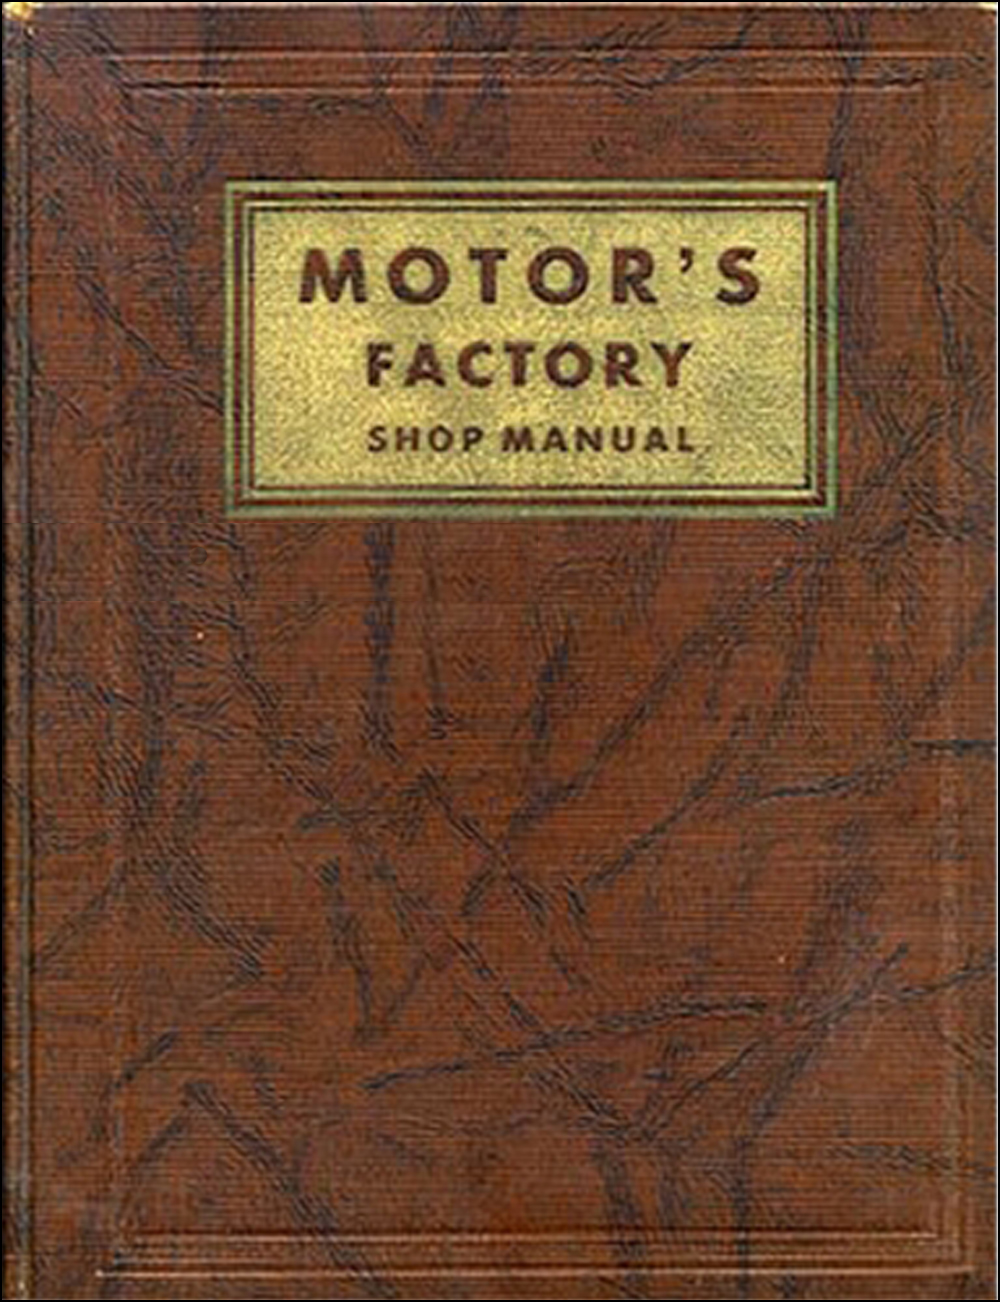 1932-1938 2nd Edition Motors Shop Manual